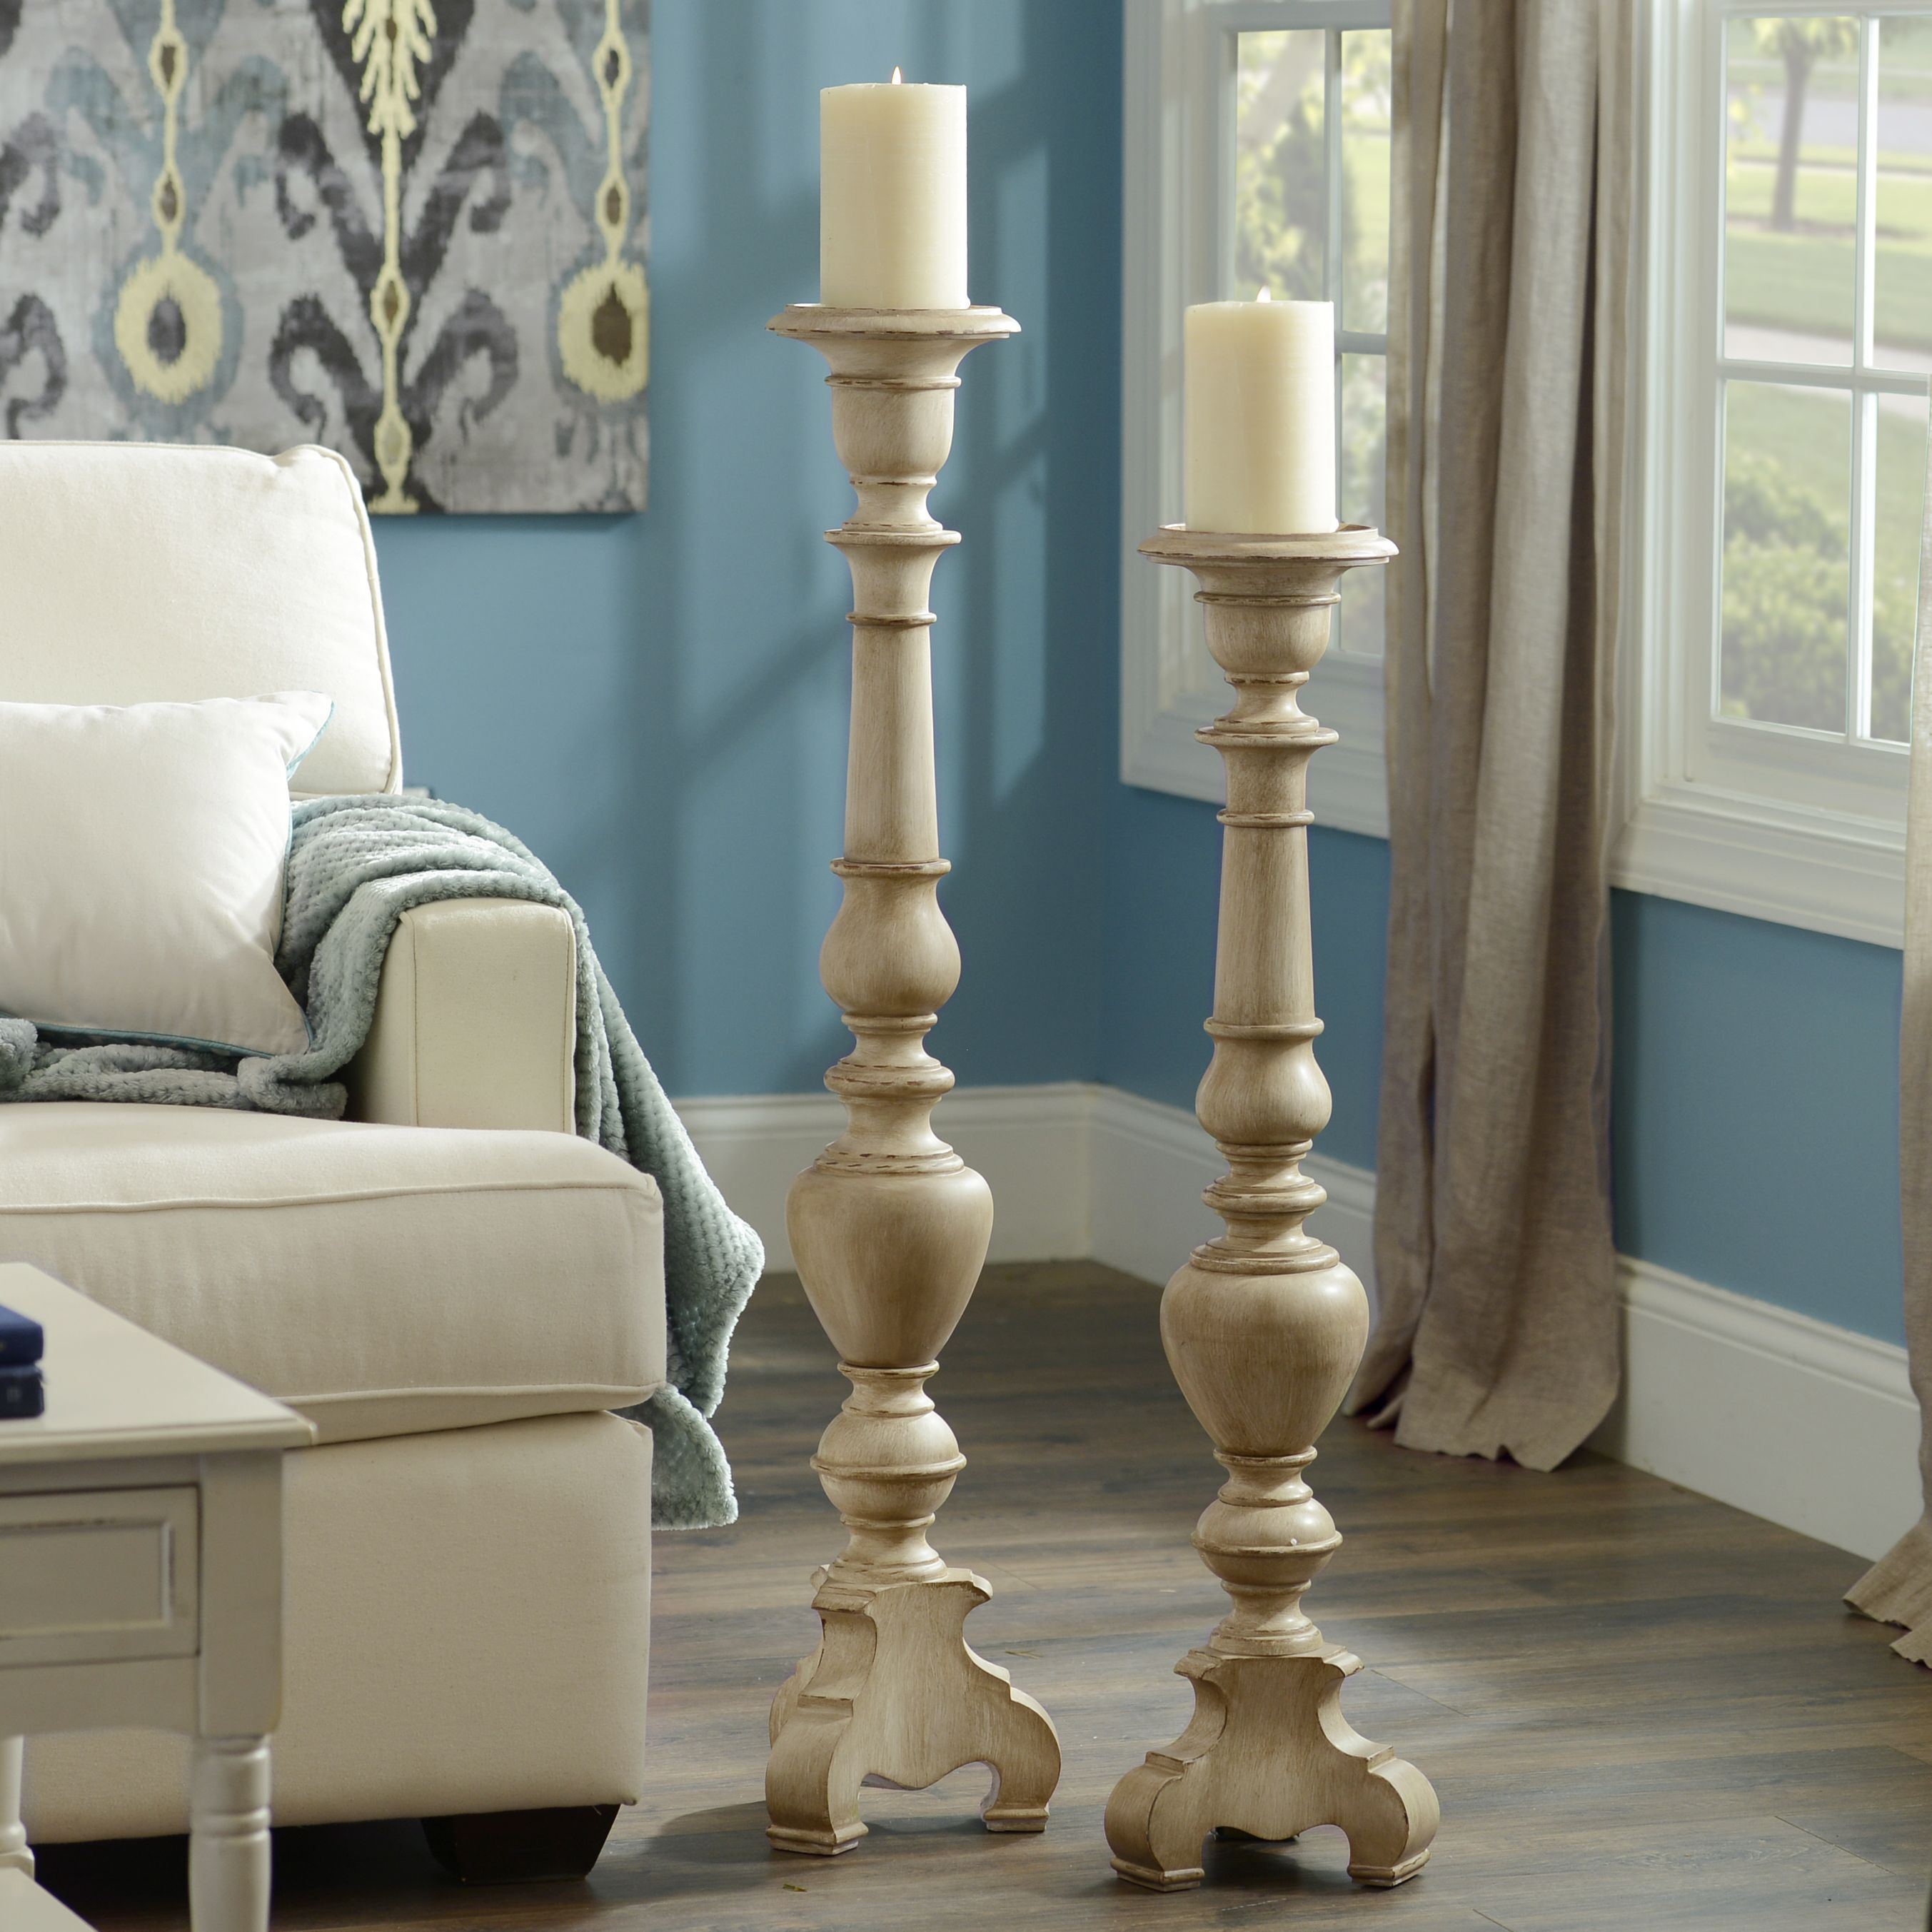 Add Tall Floor Candle Holders To Your Home For A Unique Look These Antique Wooden Candle